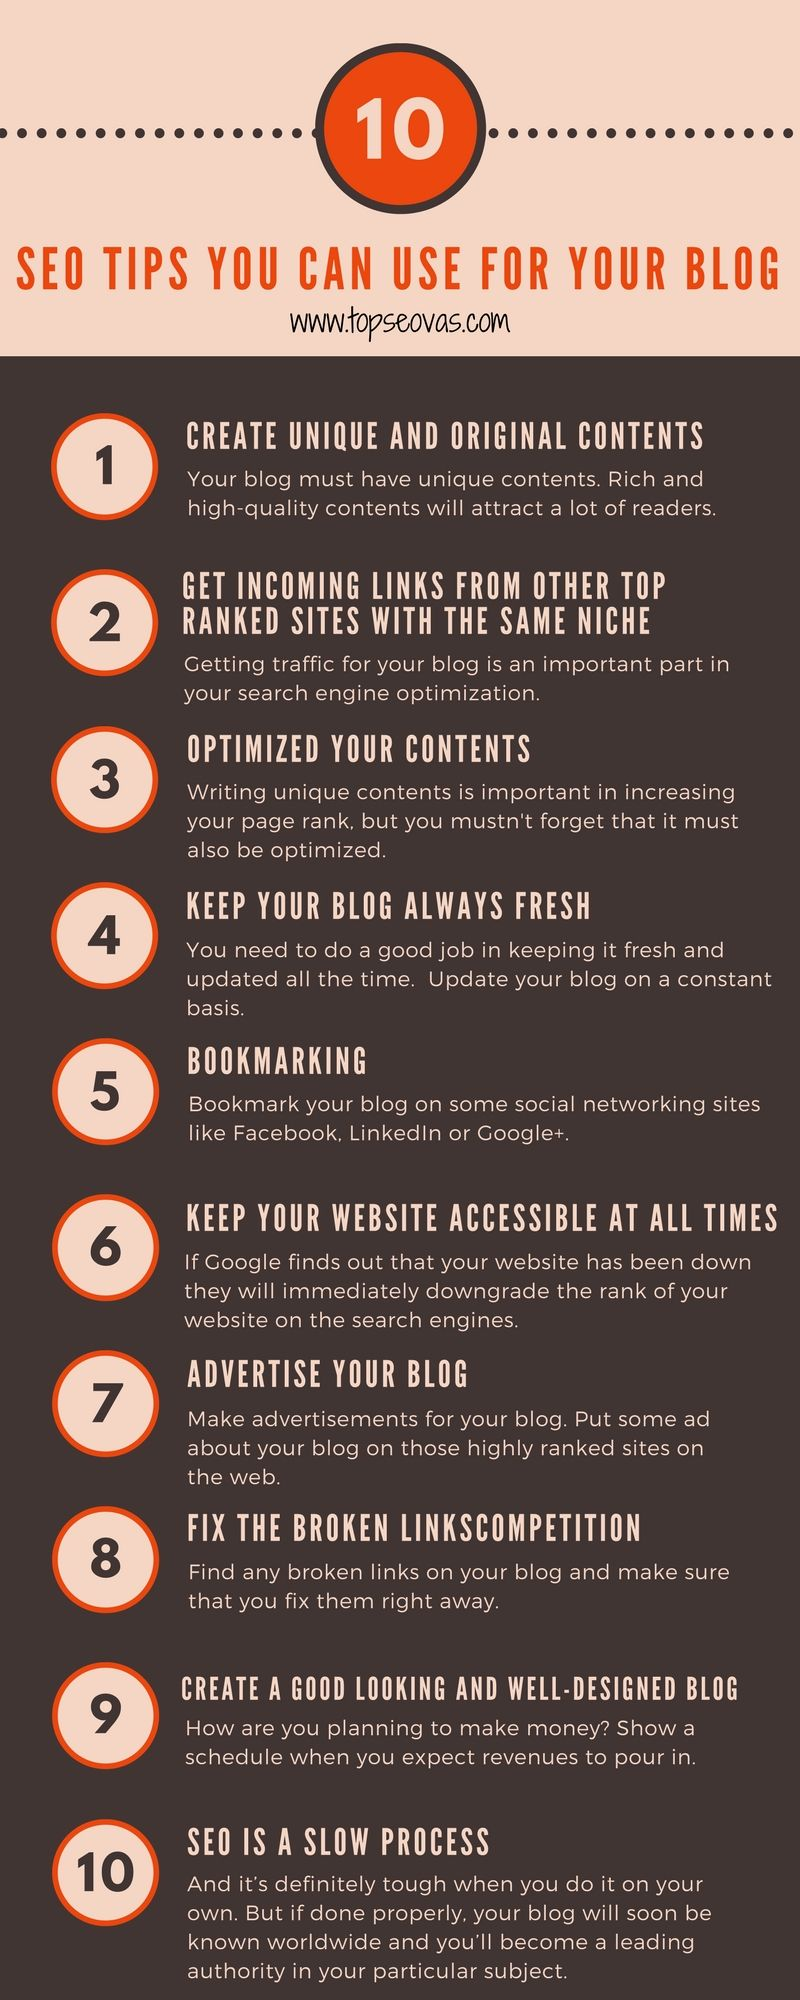 Search engine optimization is a slow process. And it's